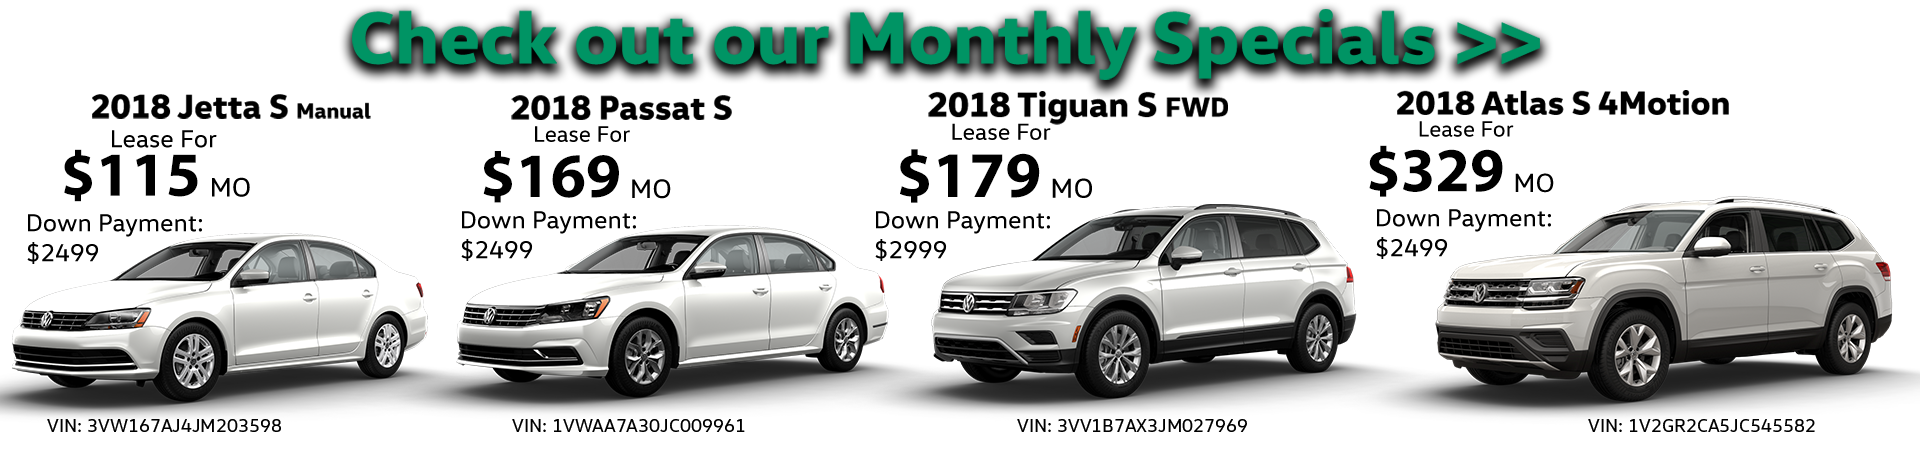 Volkswagen May 2018 monthly special bannerPNG